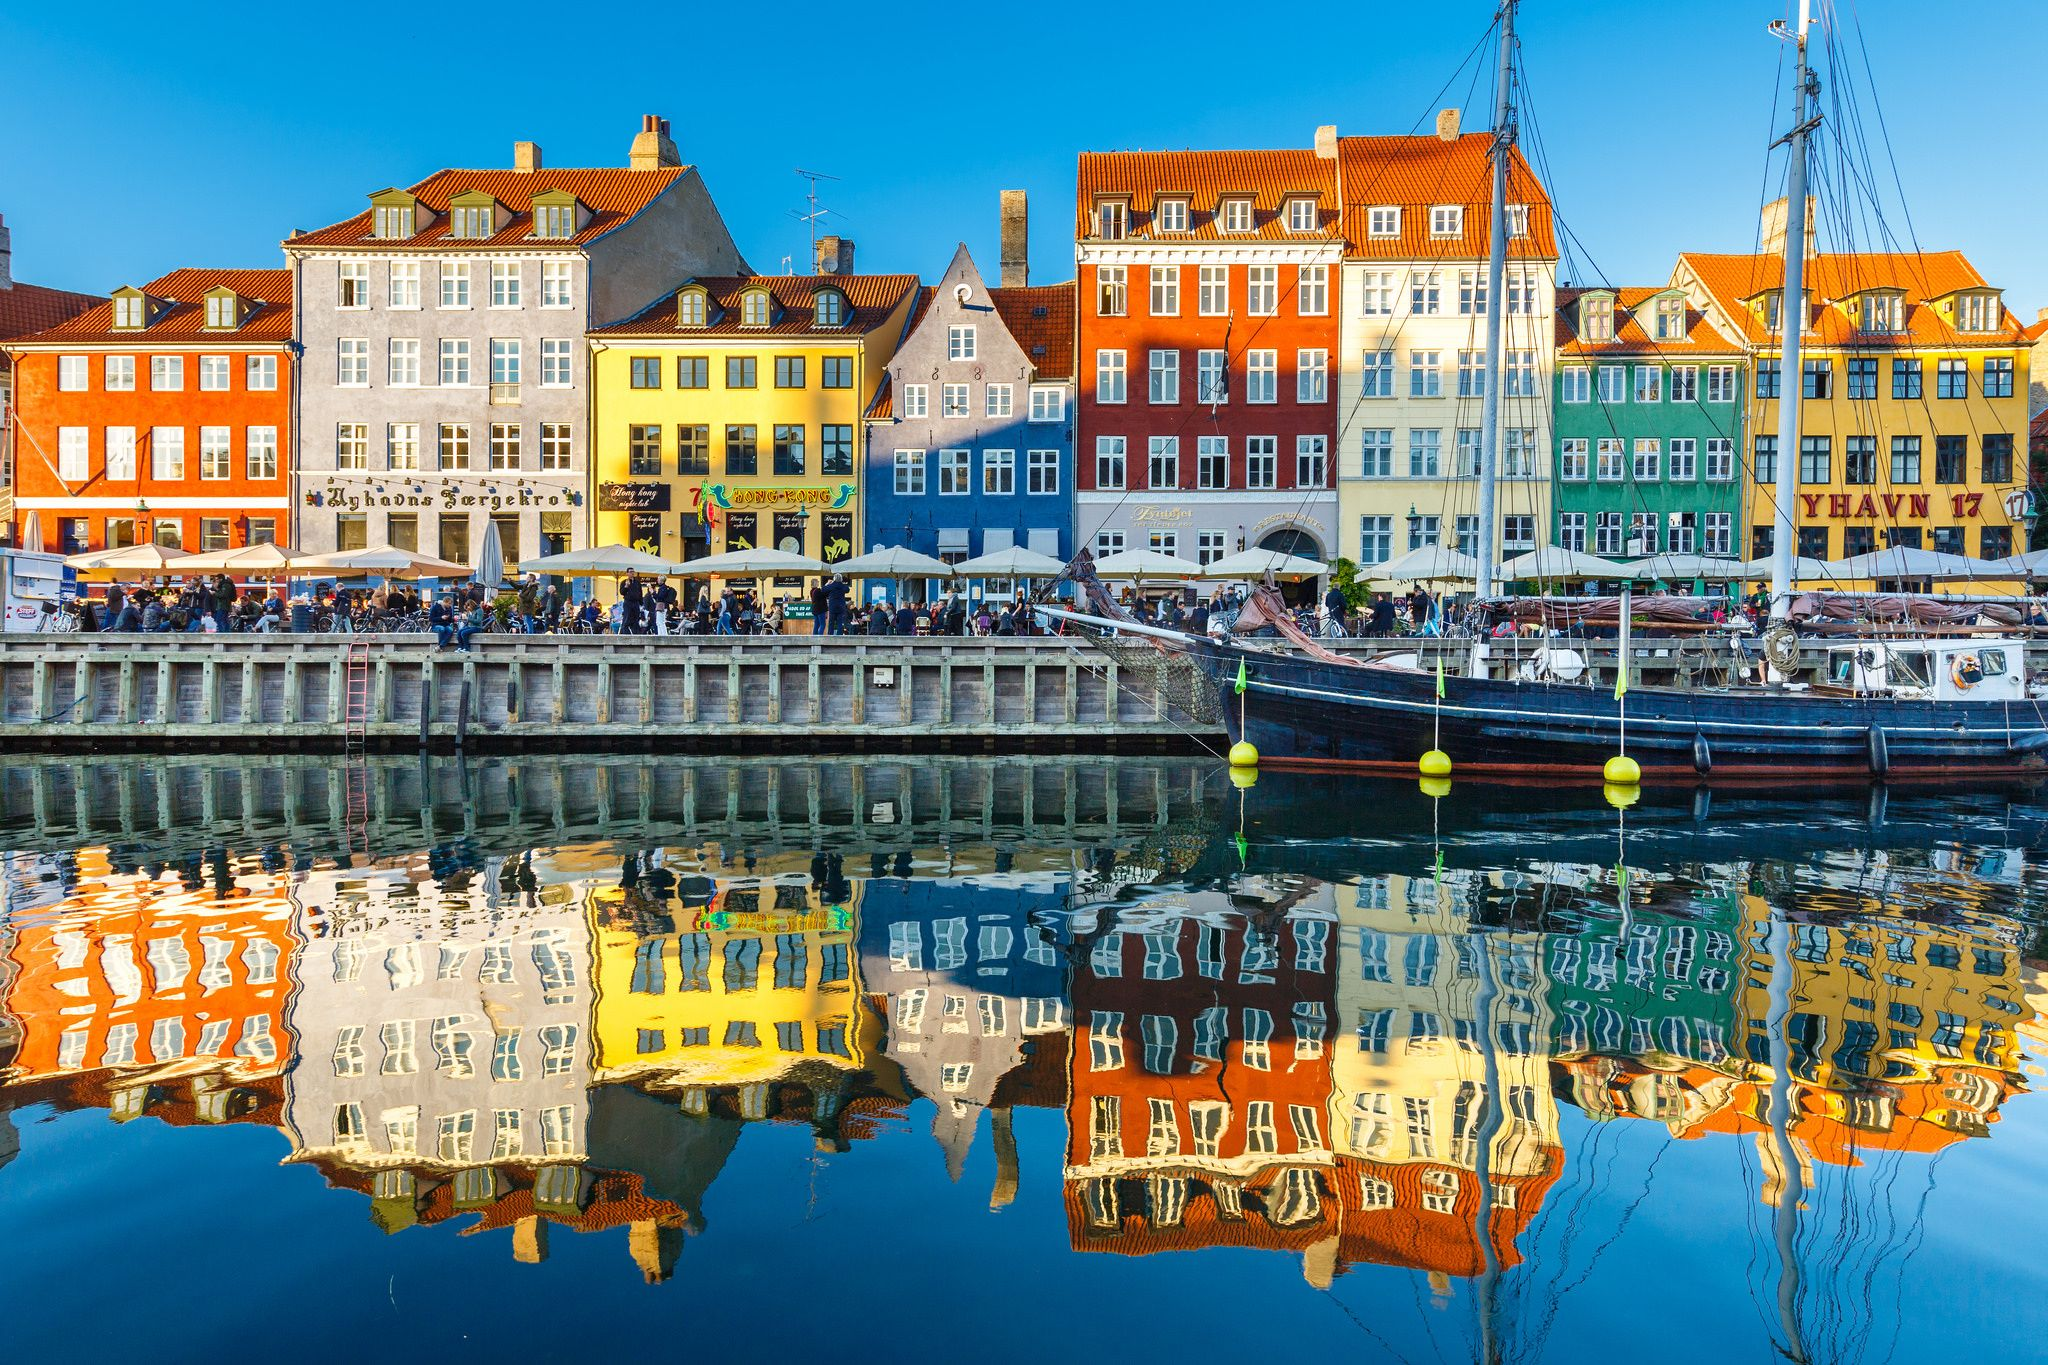 2048x1365 Copenhagen, Denmark HD Wallpaper | Background Image ...